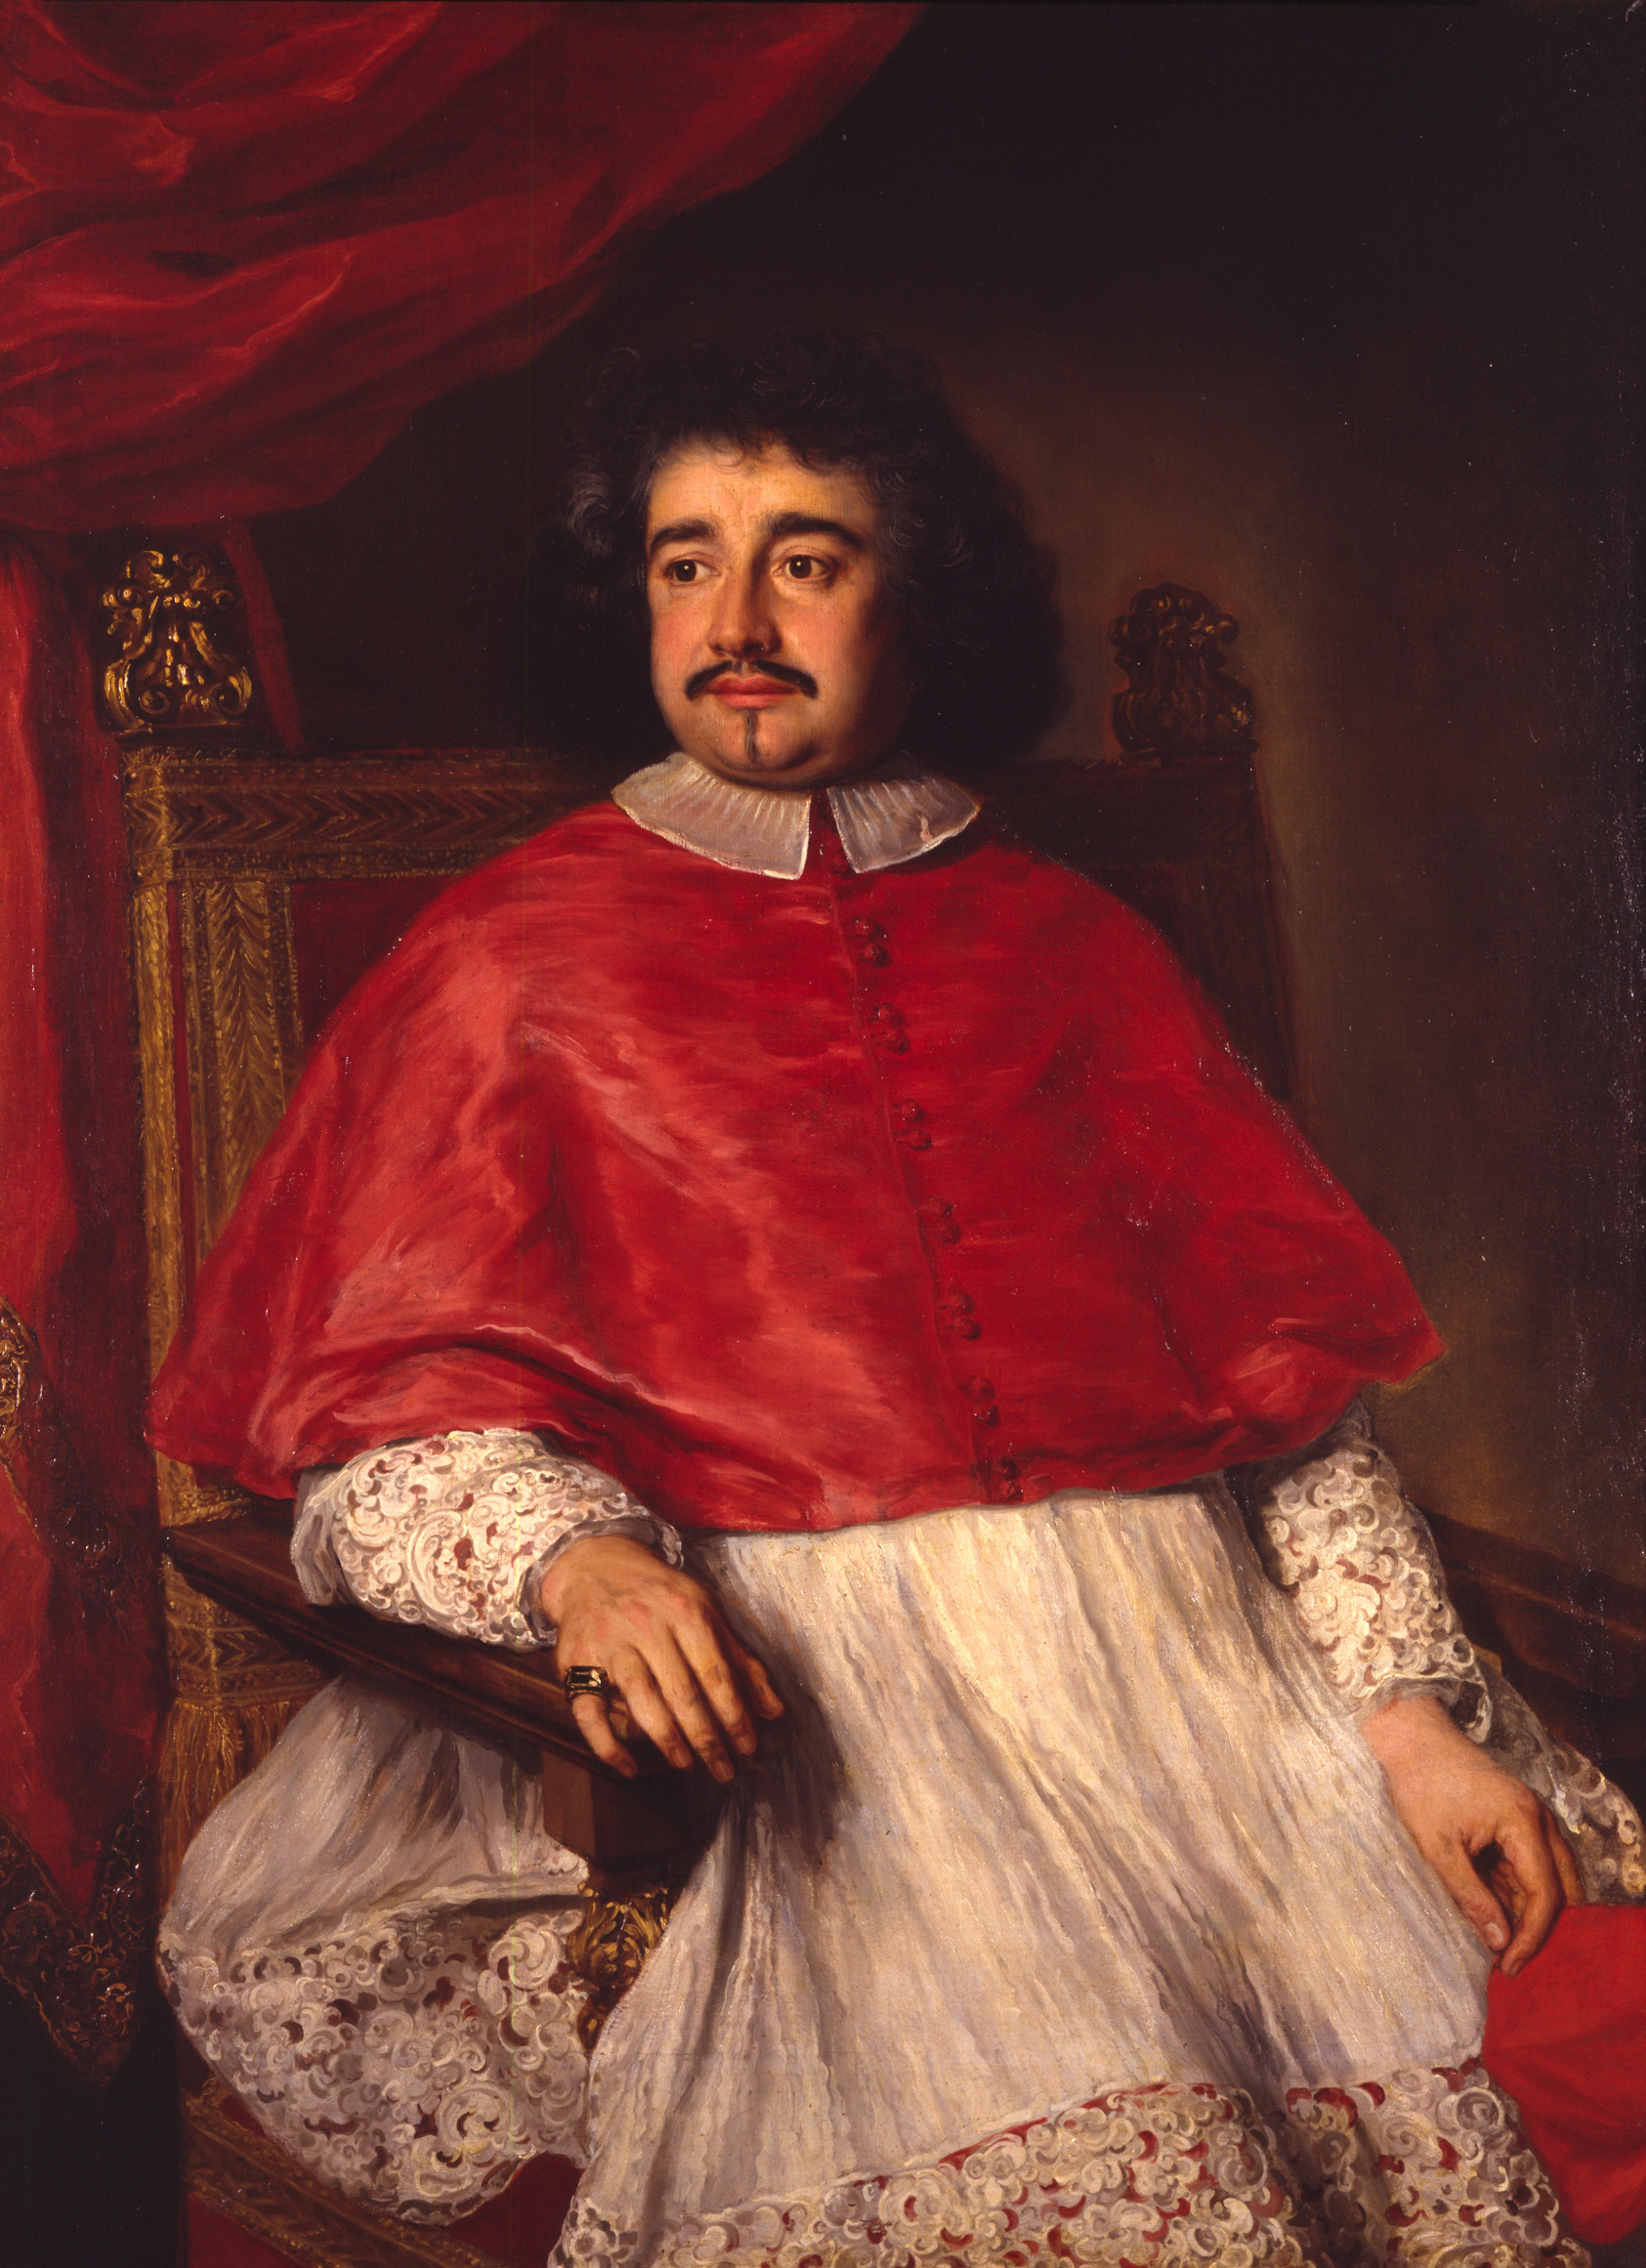 A Catholic cardinal reclines in an ornate chair.